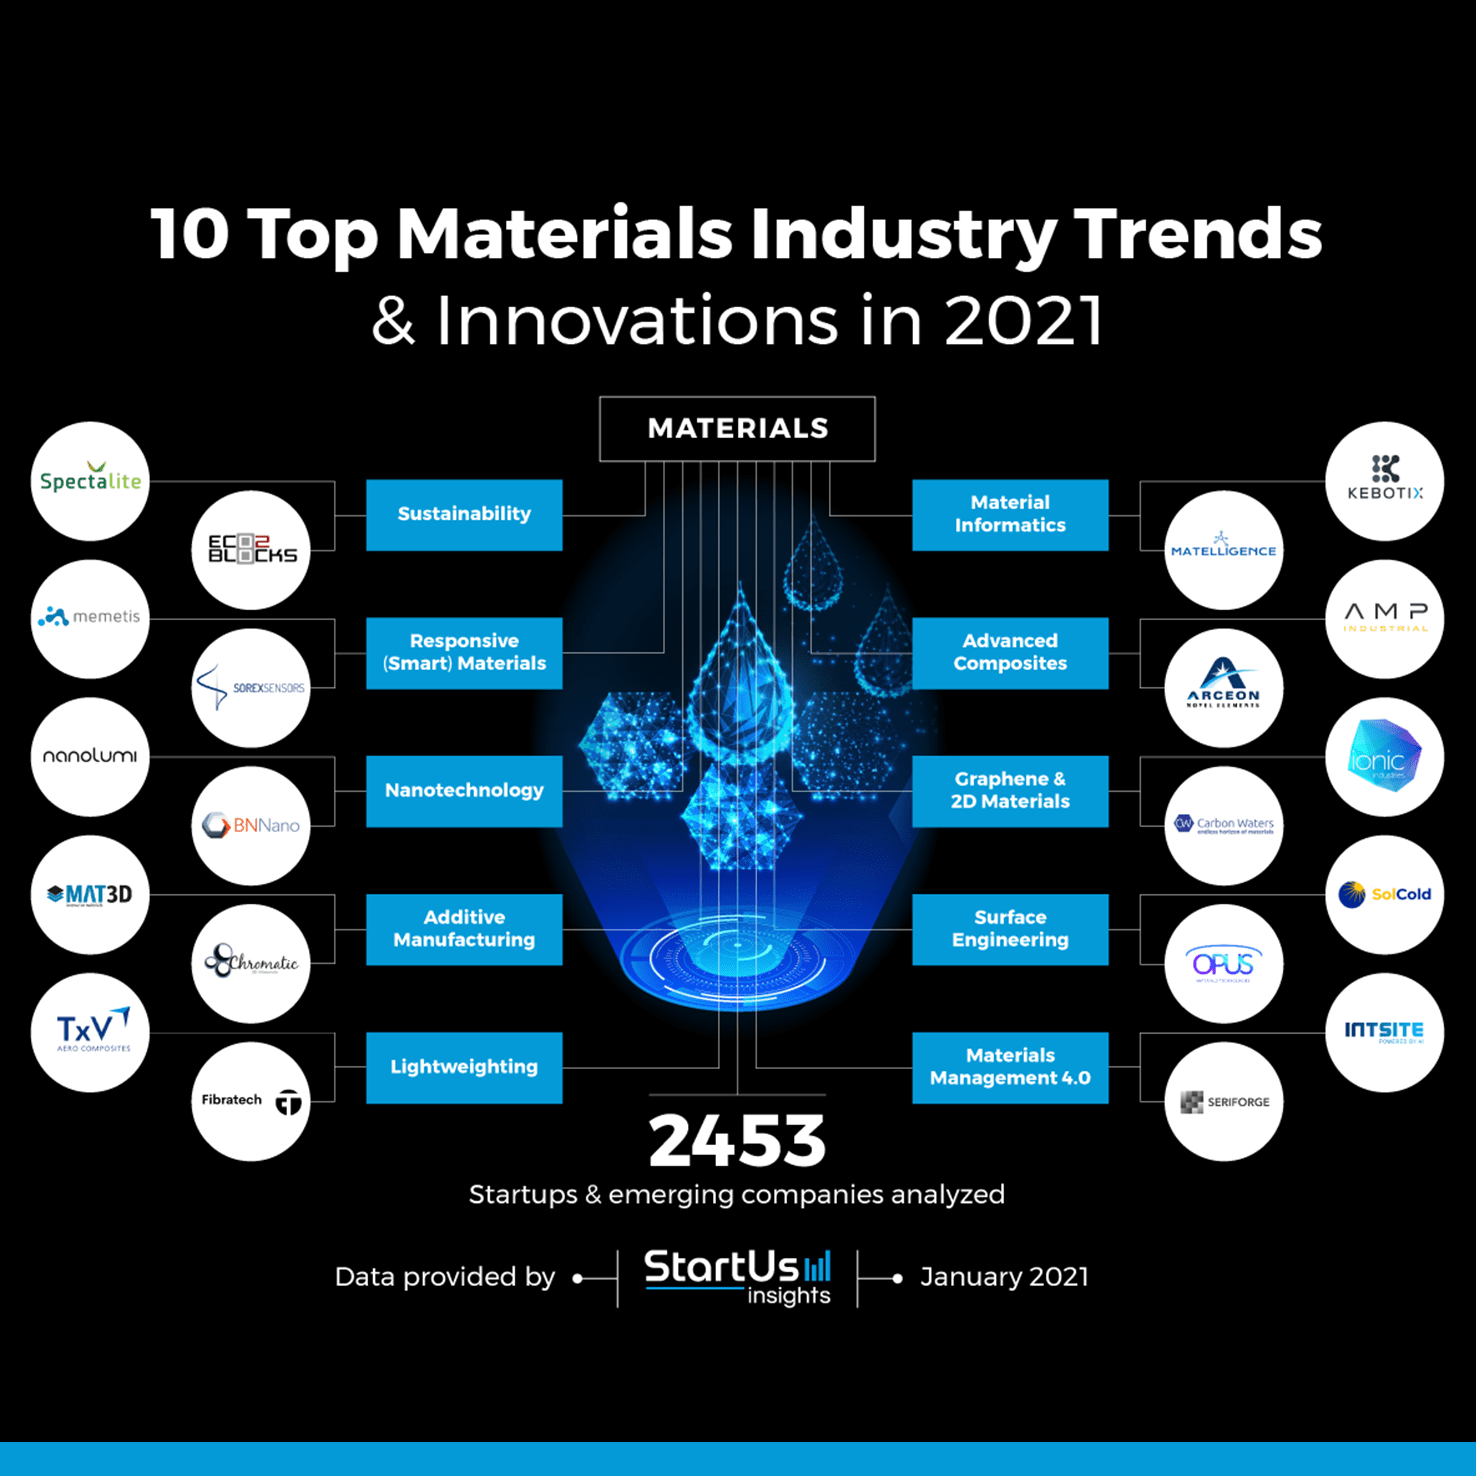 10 Top Materials Industry Innovations in 2021 9